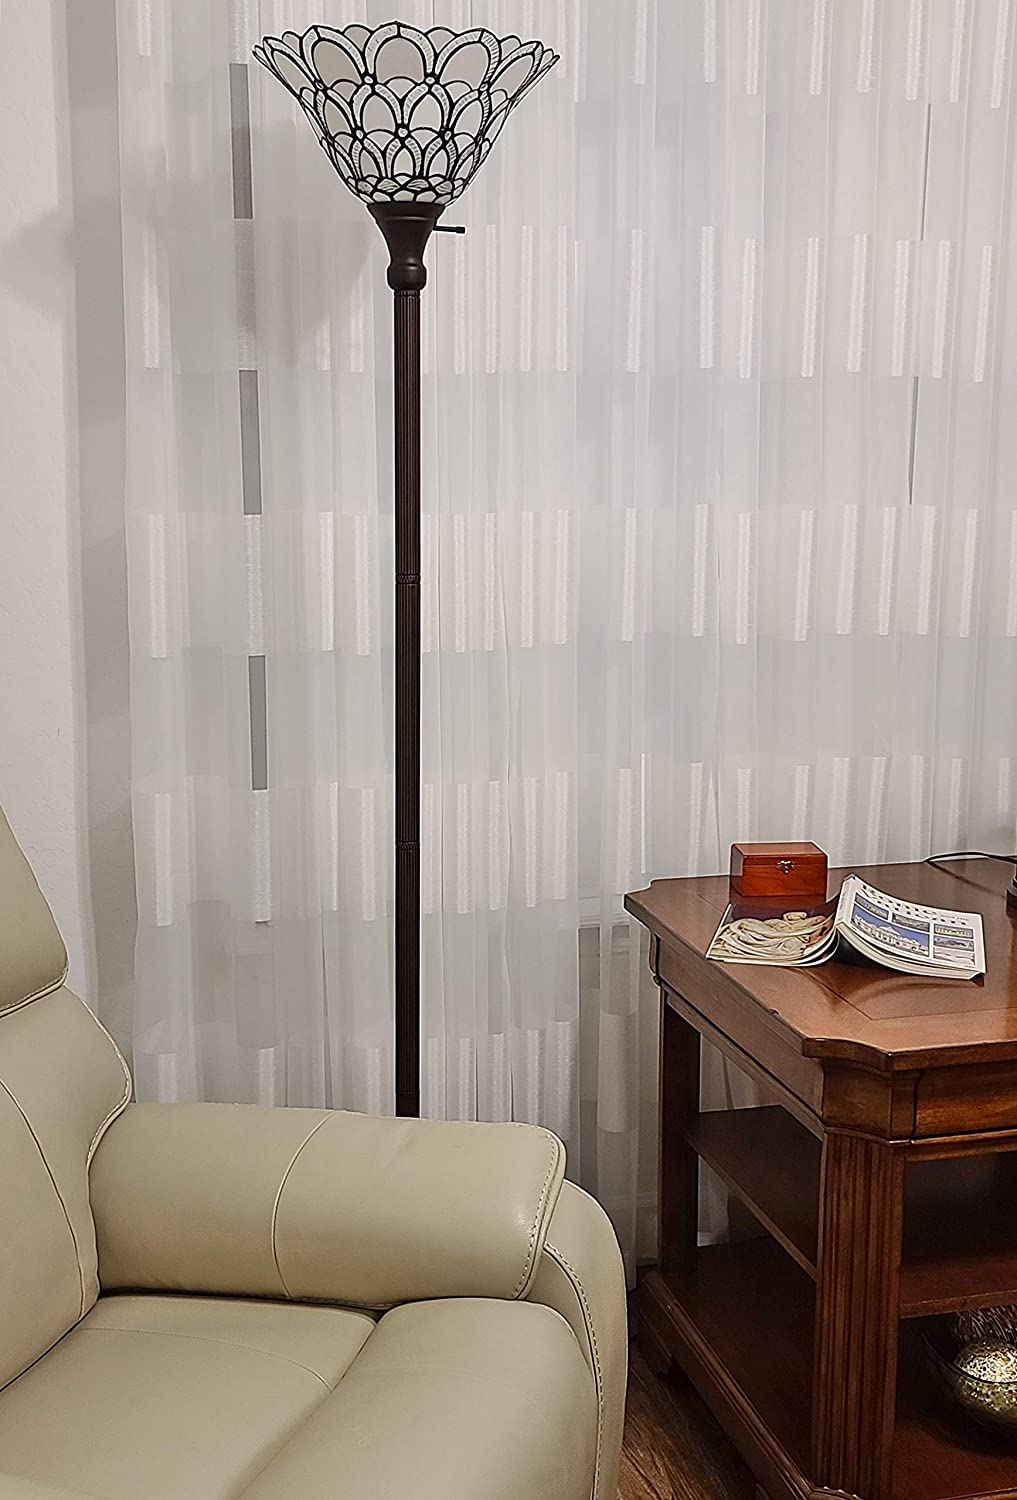 Tiffany-Style-Torchiere-Standing-Peacock-Floor-Lampv 10 Unique Floor Lamps to Brighten Your Living Room